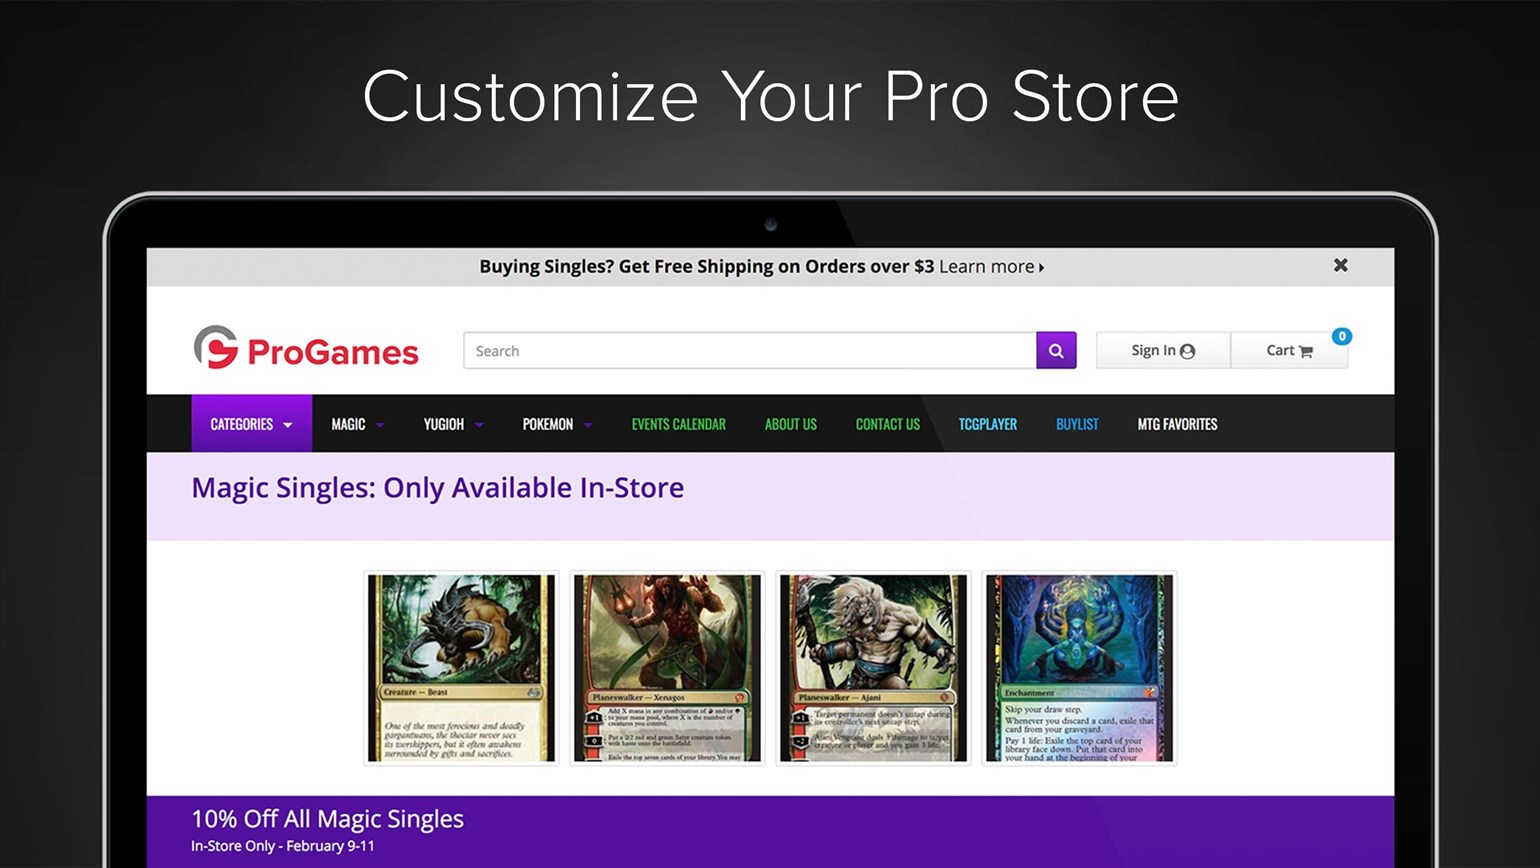 Customize Your Pro Online Store with Your Own Images